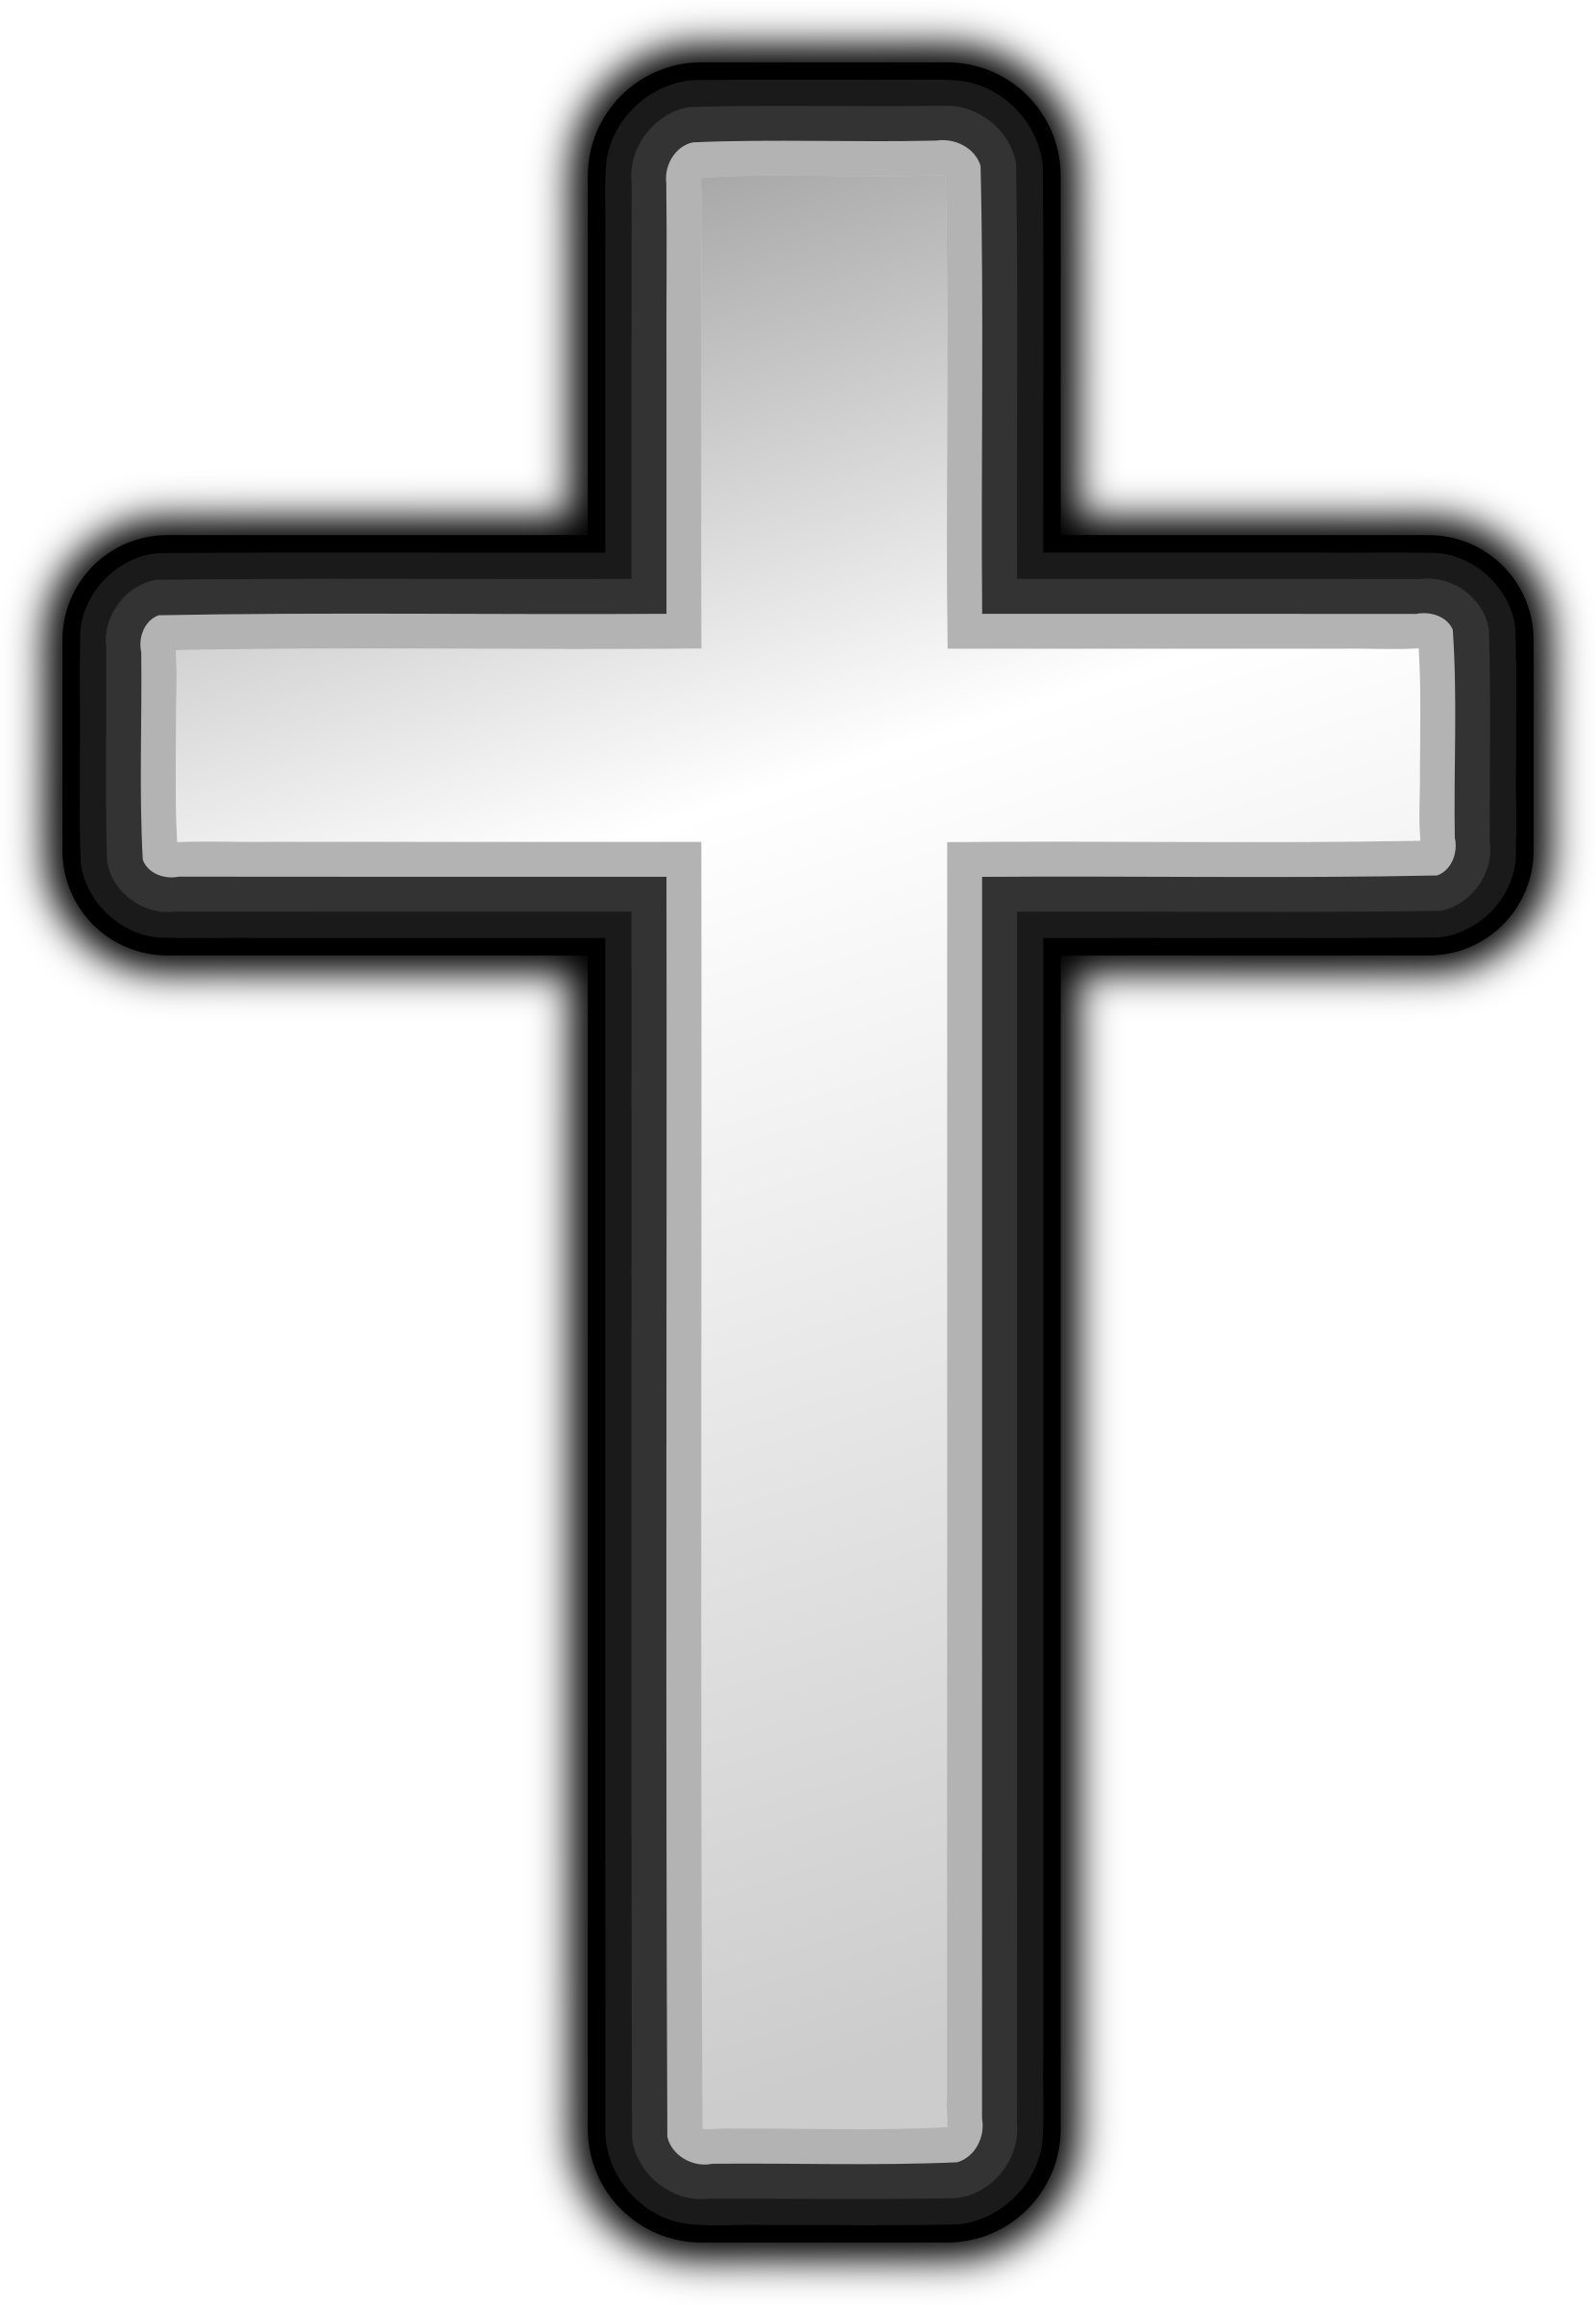 Clipart cross black and white jpg black and white library Clipart - Cross 001 jpg black and white library